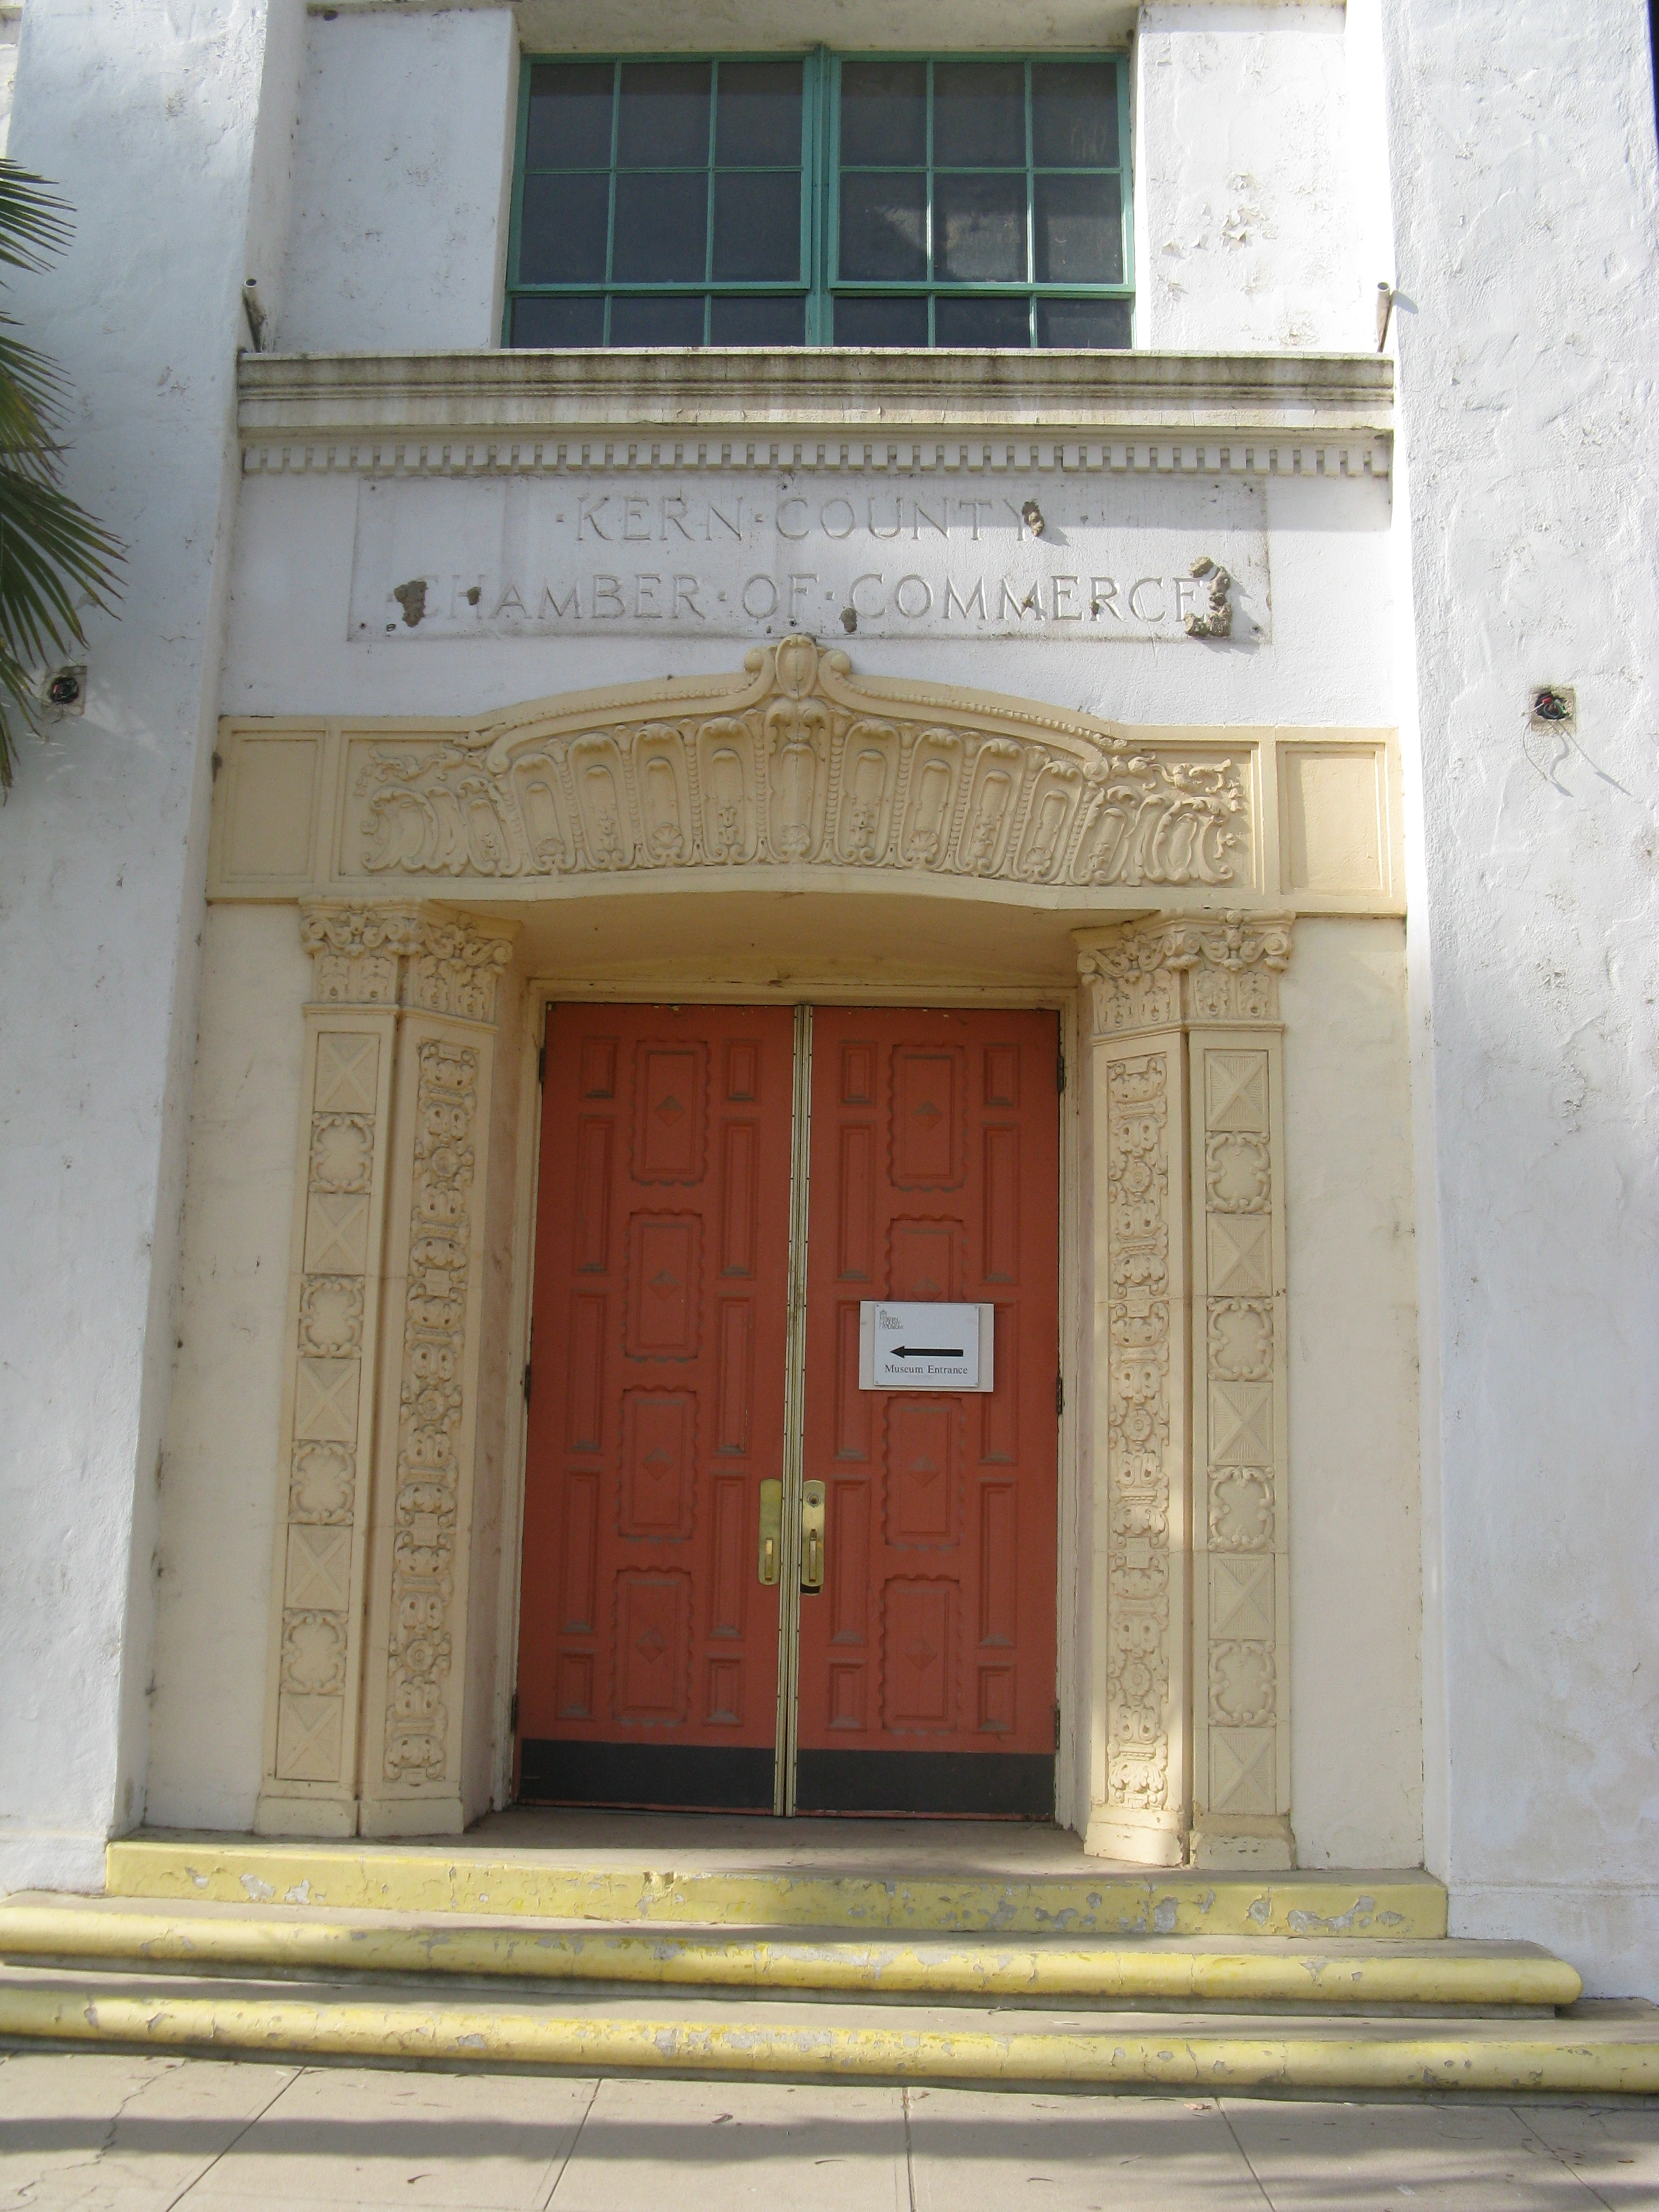 Entrance to the Chamber of Commerce Building